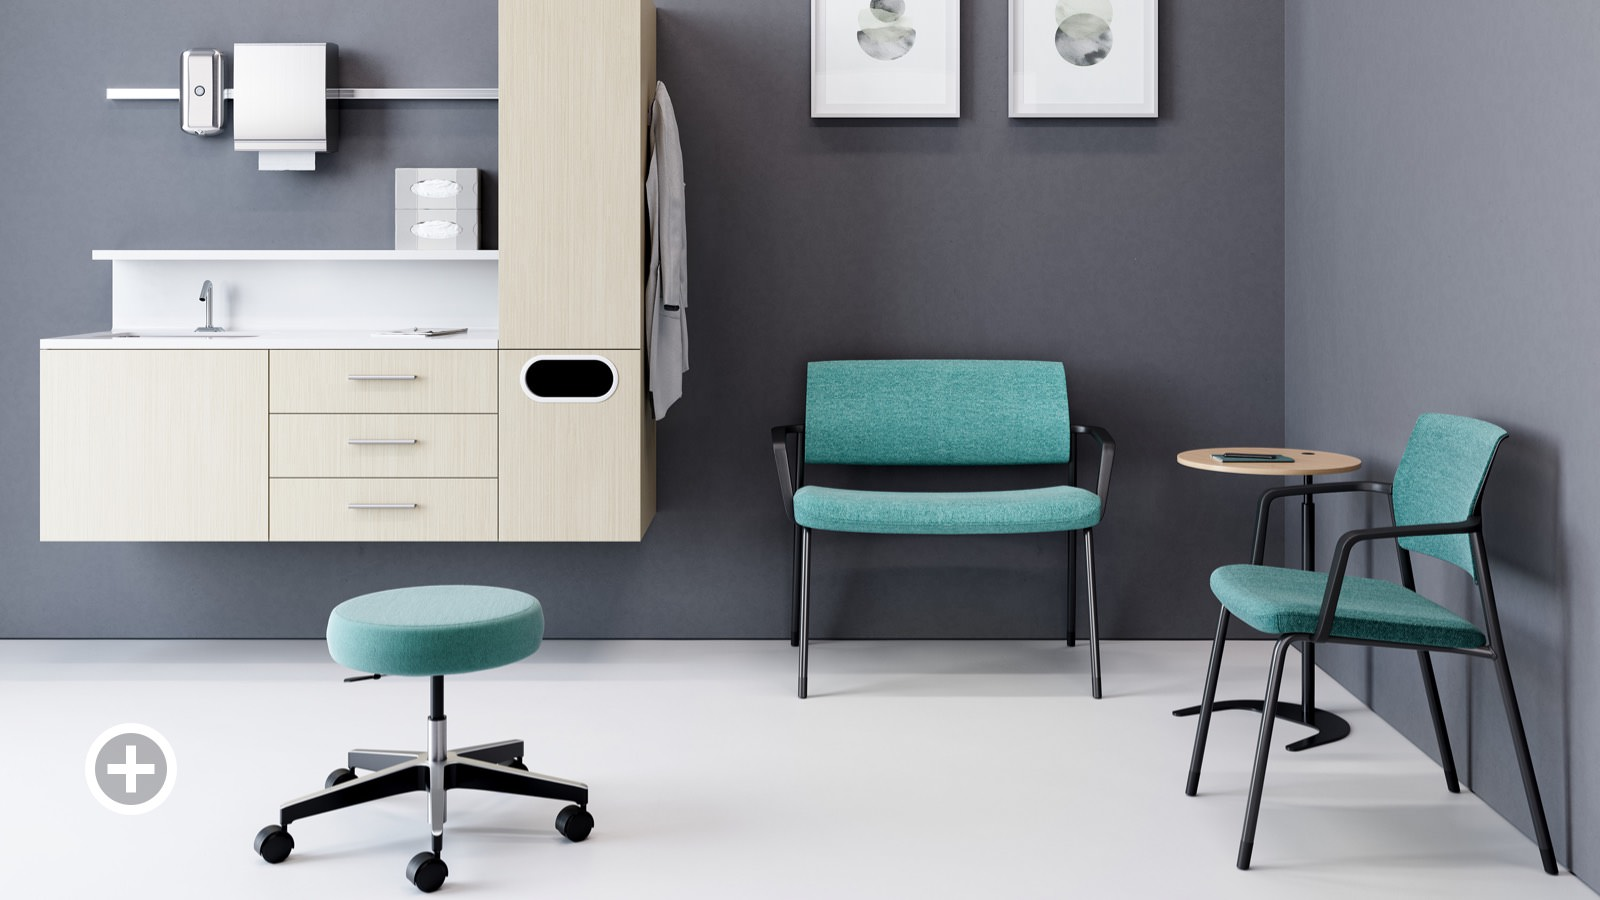 Exam Room with a teal upholstered Physician Stool, light finish wall-hung Mora casework, and two green Verus chairs--one a Plus and one a side--both wall saving.